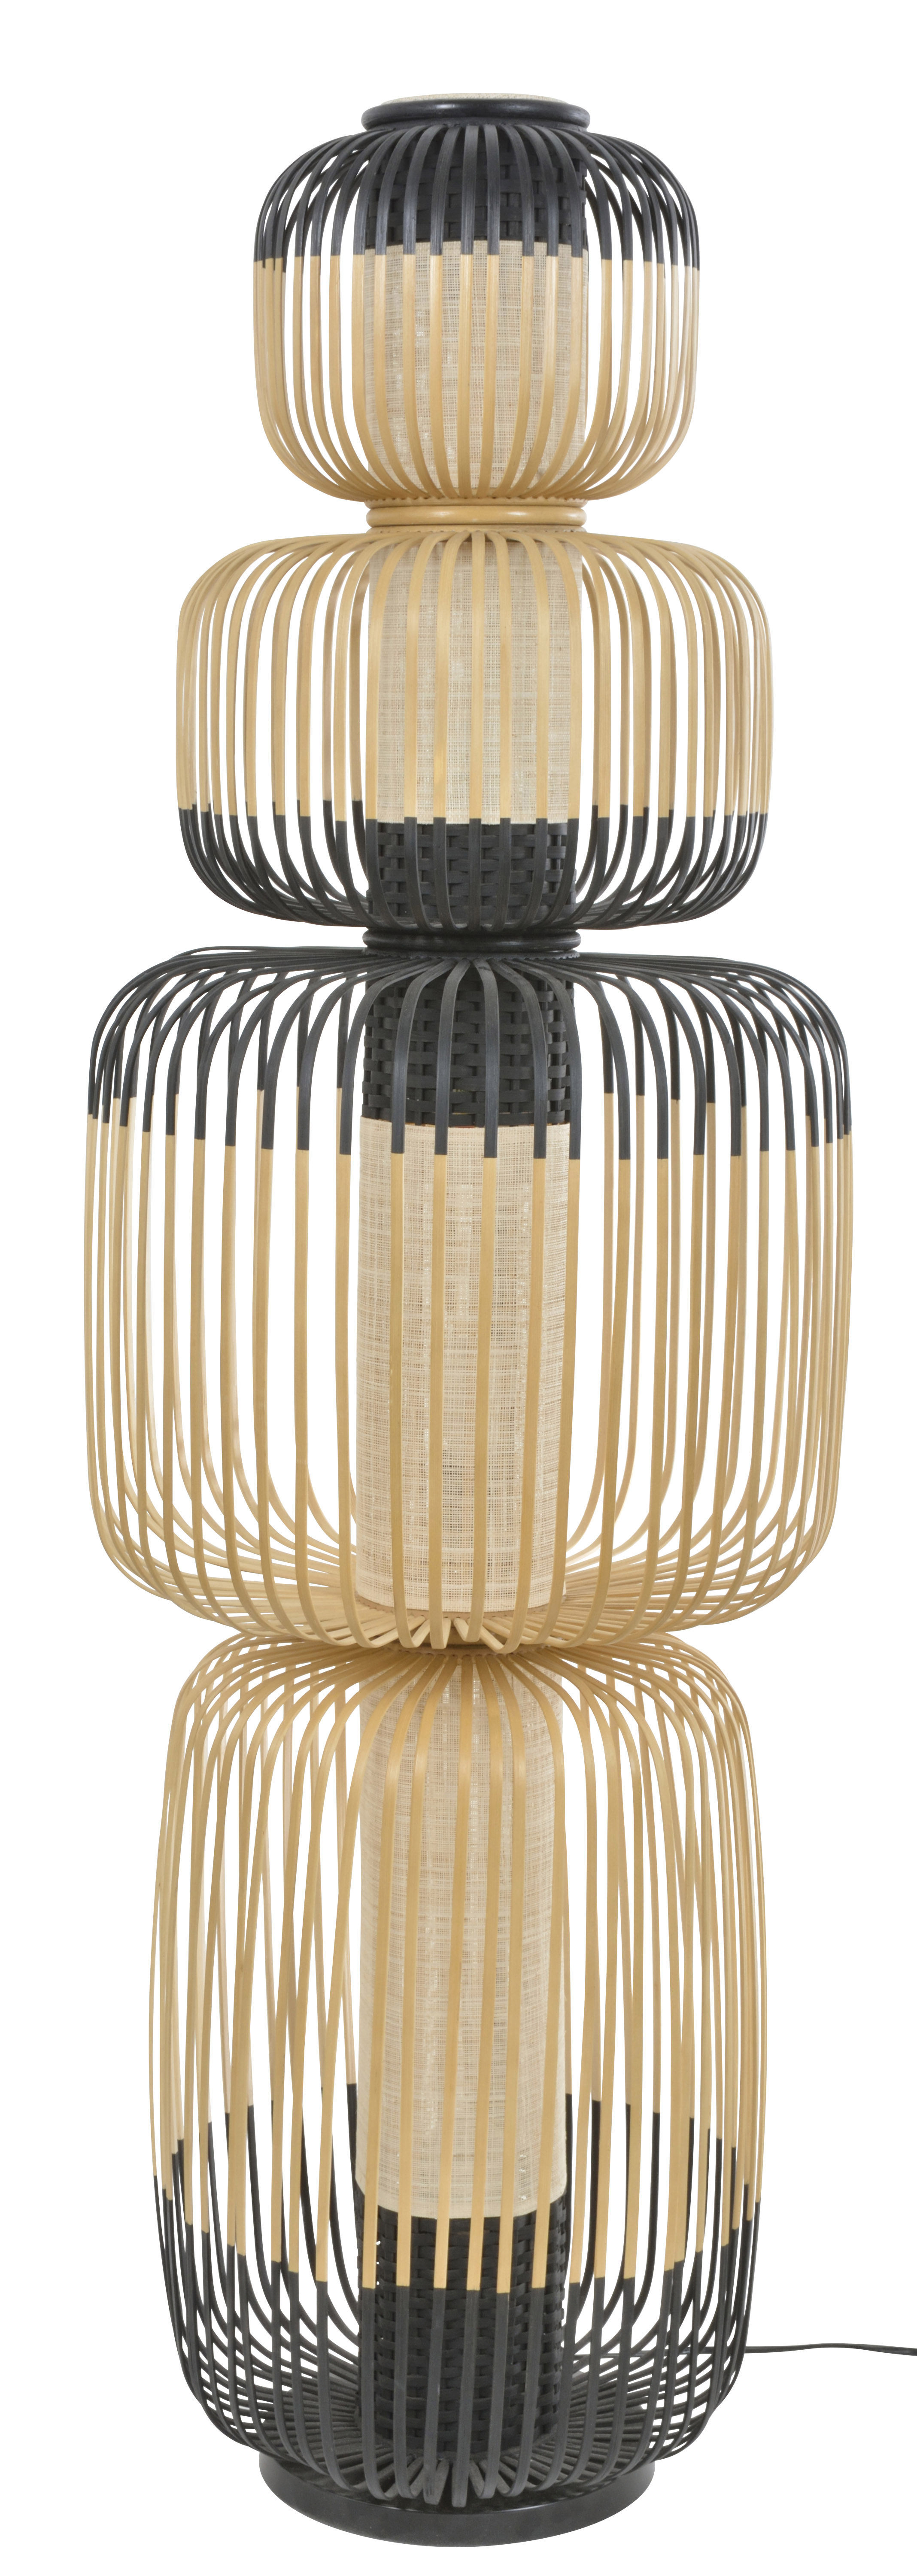 Lighting - Floor lamps - Totem Bamboo Light Floor lamp - / 4 lampshades - H 138  cm by Forestier - H 138 cm / Black & natural - Bamboo, Fabric